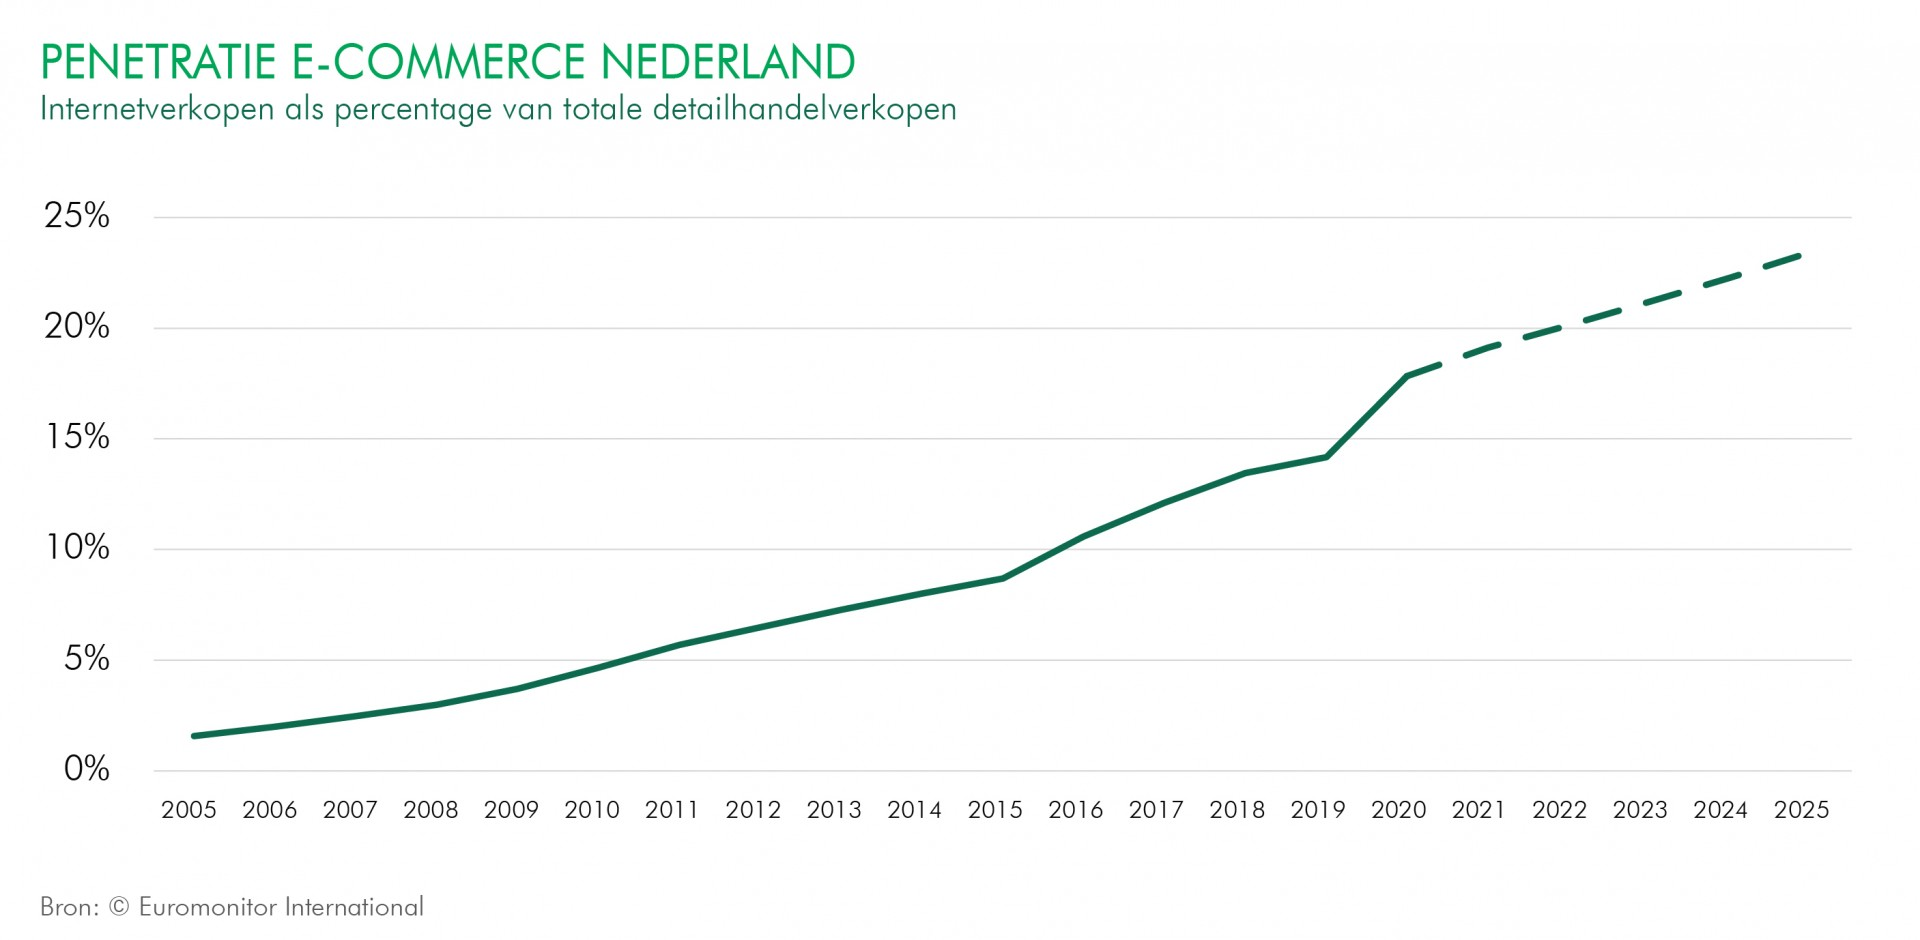 CBRE Outlook Penetratie e-commerce Nederland